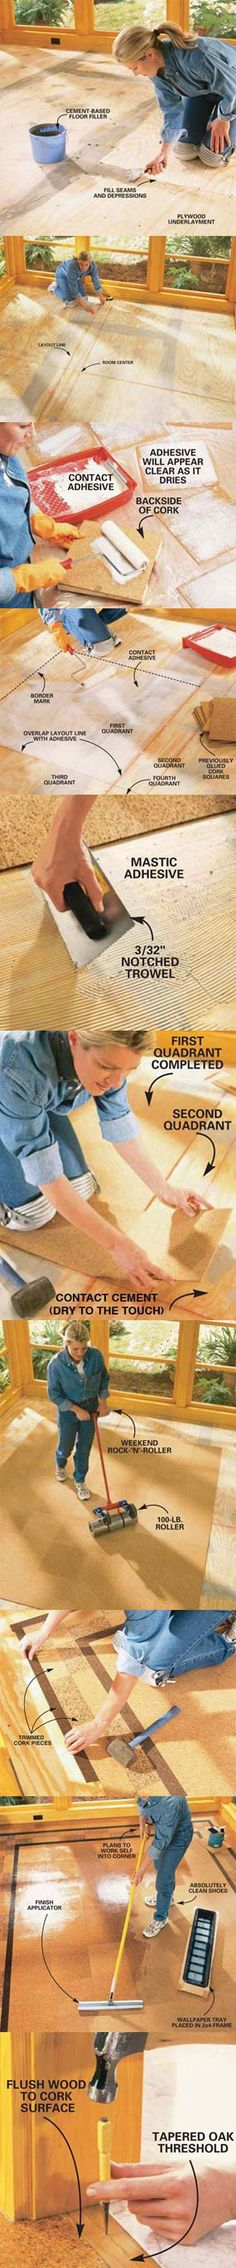 We'll show you everything you need to install a cork floor. Cork flooring is a natural, renewable product that's easy to install yourself with basic tools. It's also attractive, quiet underfoot and easy to clean. It's a great choice for living rooms, offices and even the kitchen. Get all the steps at http://www.familyhandyman.com/DIY-Projects/Flooring/Floor-Installation/how-to-install-cork-tile-flooring/View-All